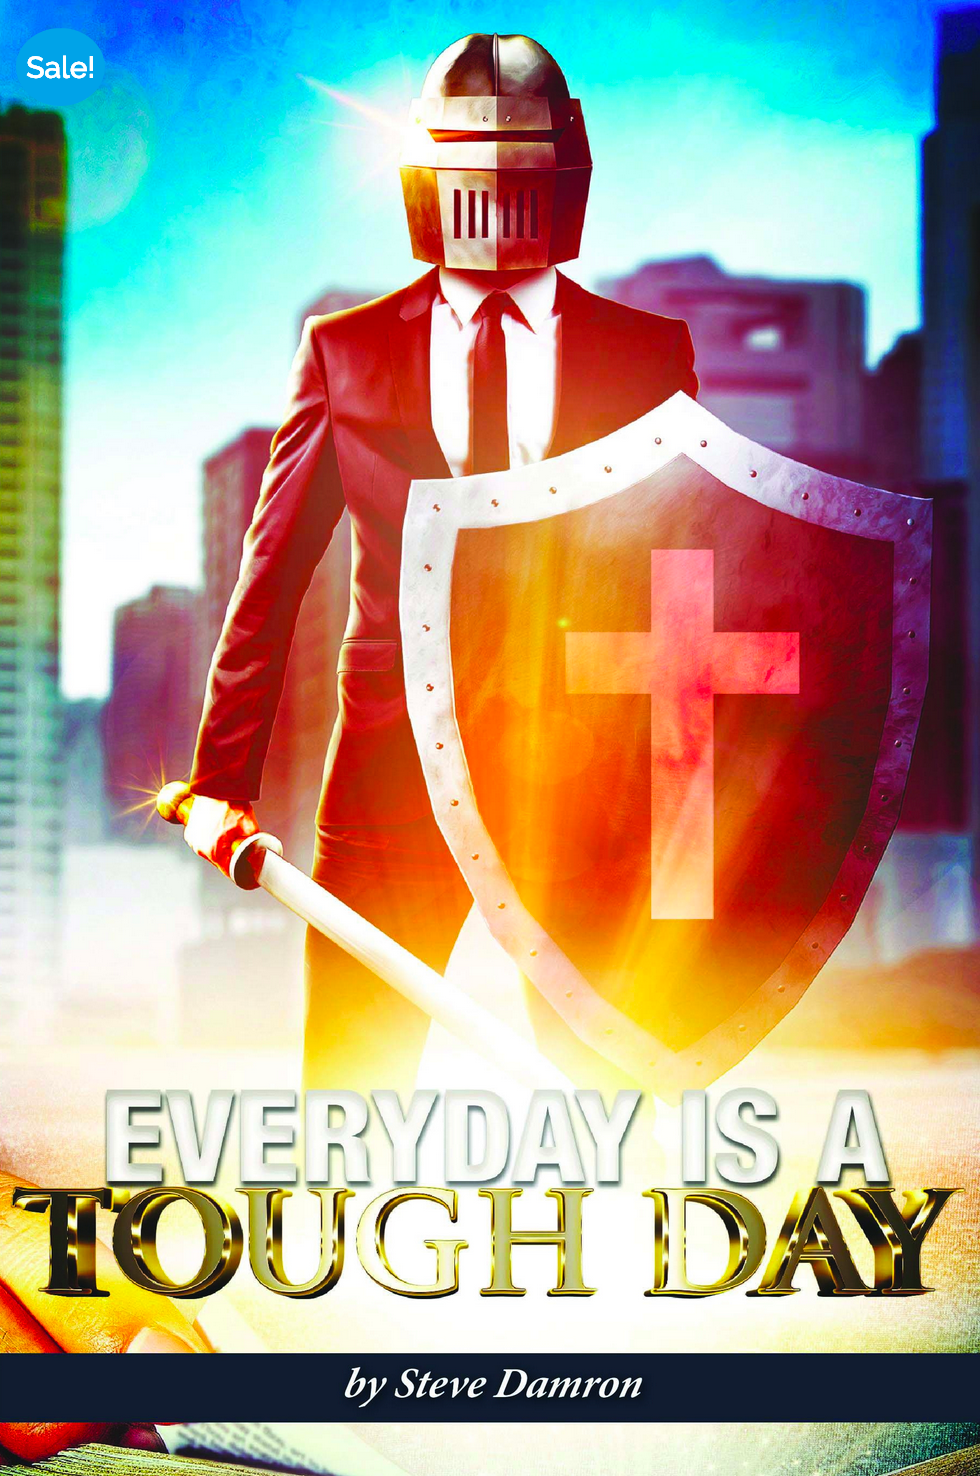 NEW RELEASE! EVERY DAY IS TOUGH DAY (by Pastor Steve Damron)